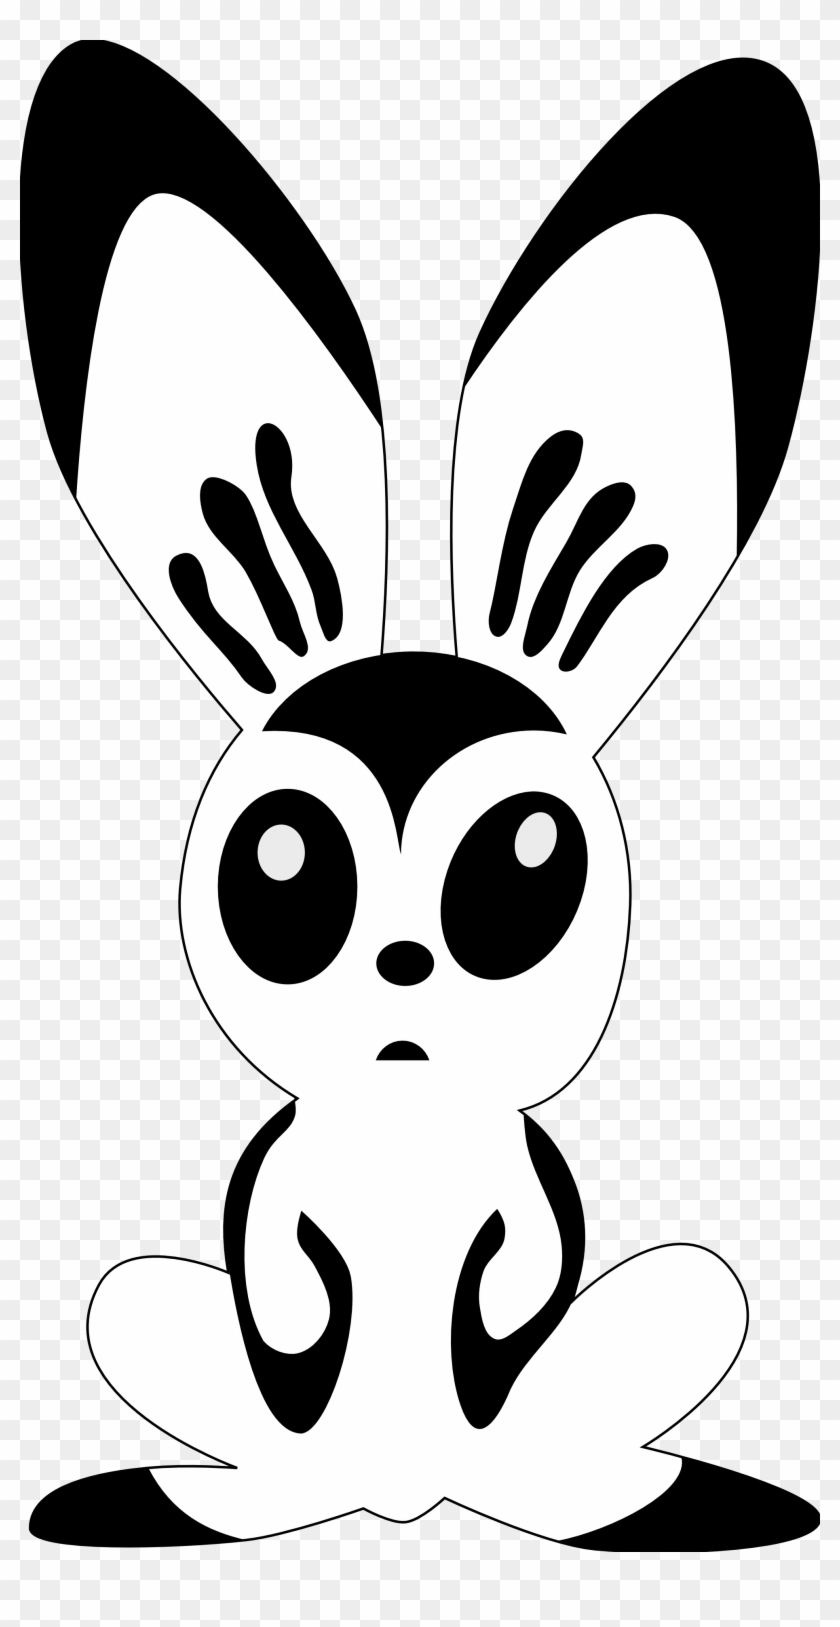 Hare Clip Art - Black And White Easter Bunny Clipart #3685